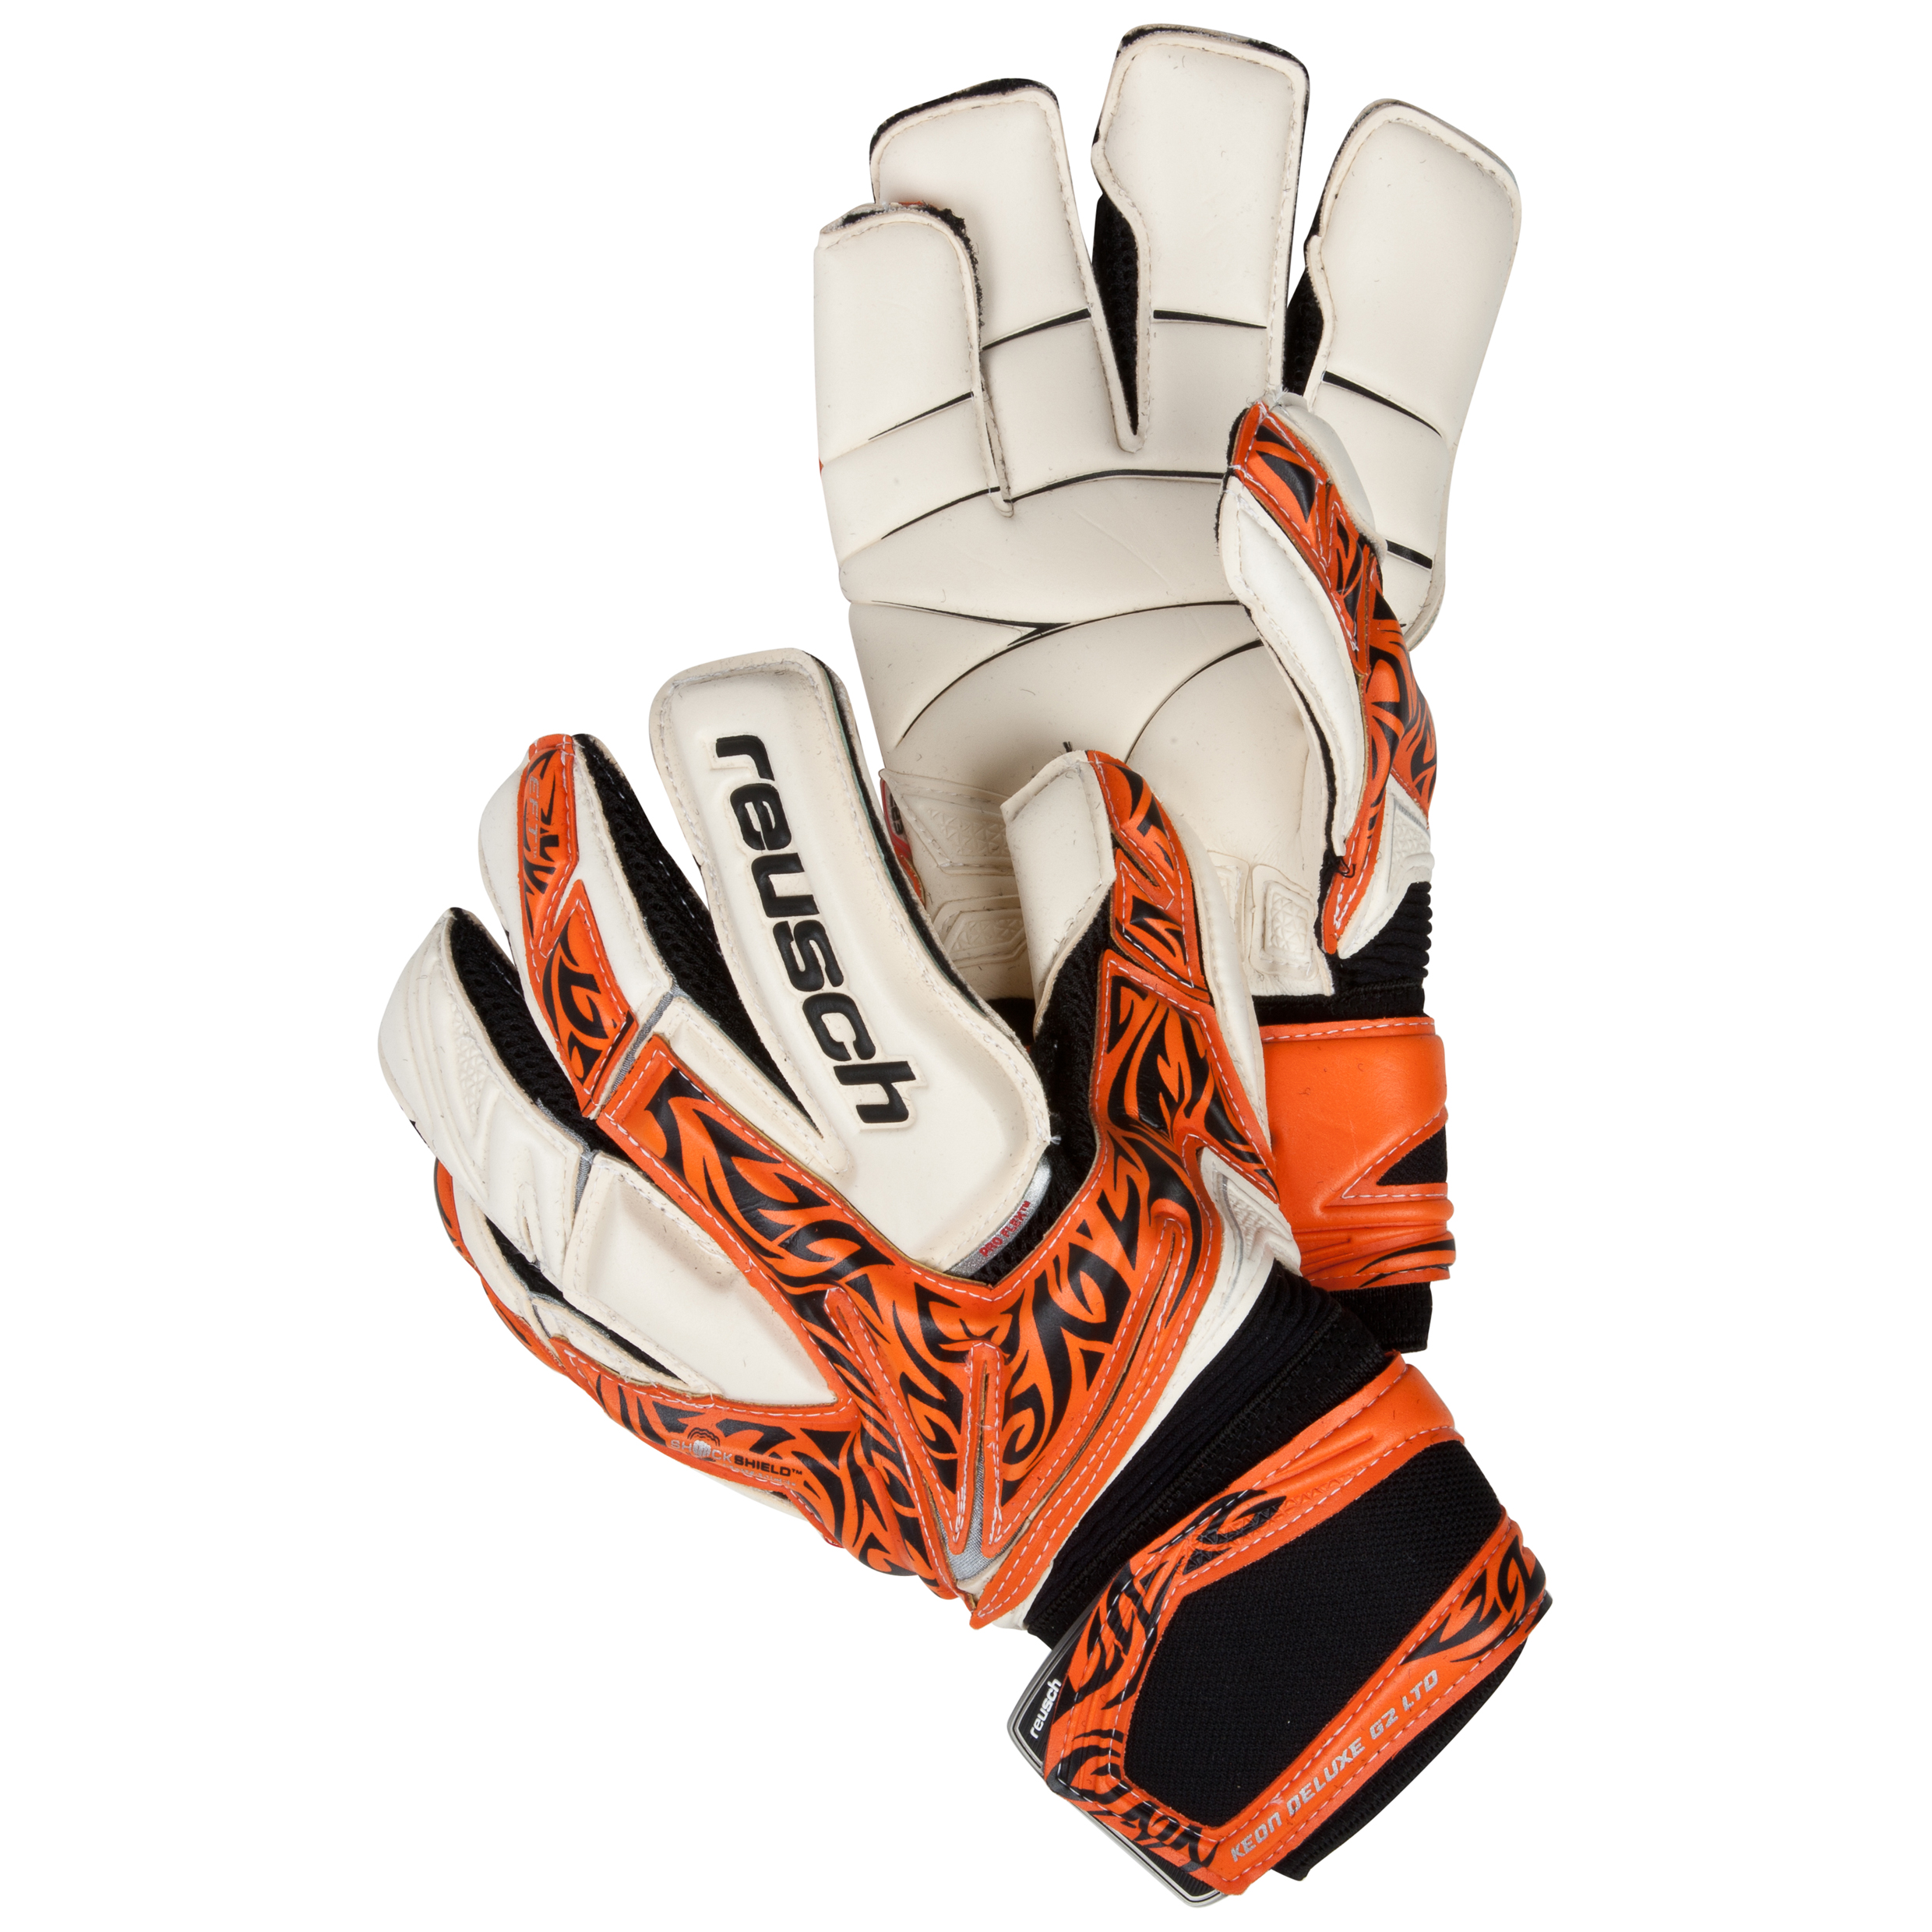 Reusch Keon Deluxe G2 LTD - Goalkeeper Gloves - Orange/Black/Ltd